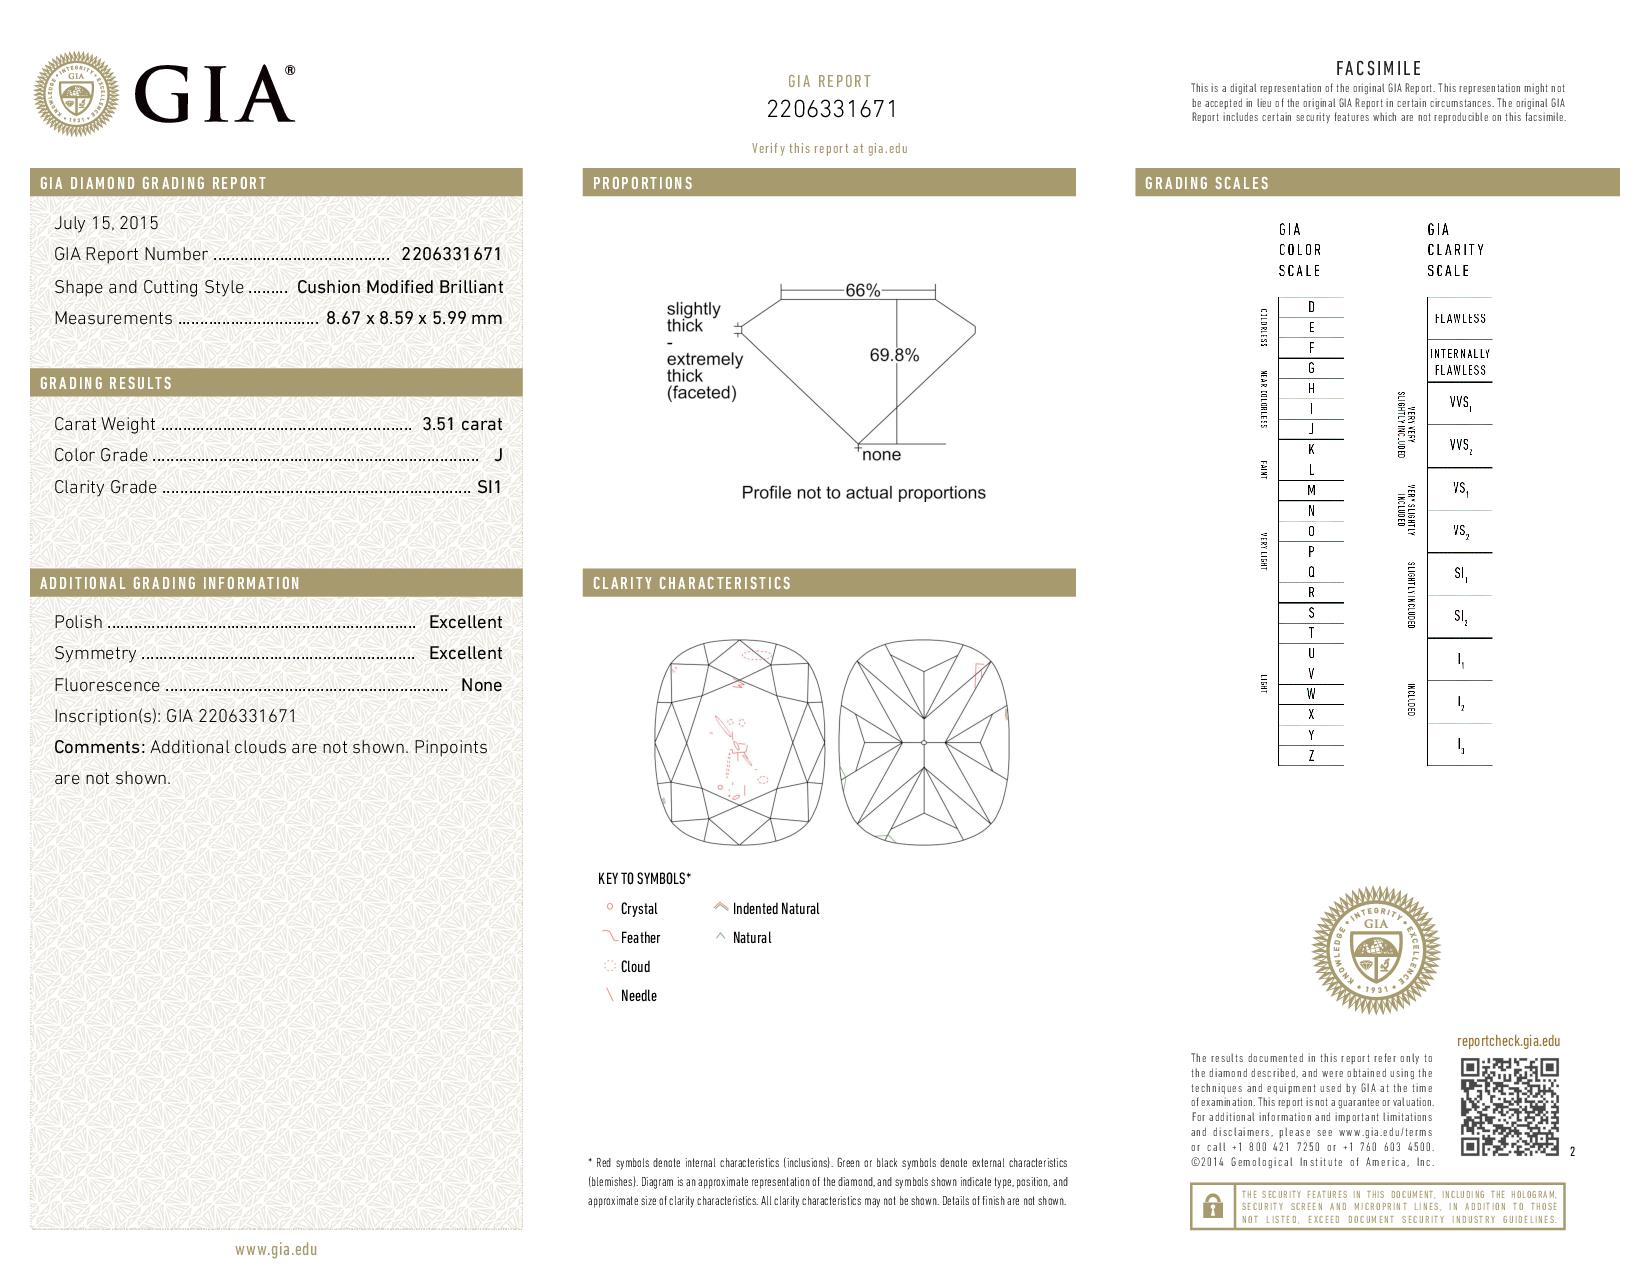 This is a 3.51 carat cushion shape, J color, SI1 clarity natural diamond accompanied by a GIA grading report.